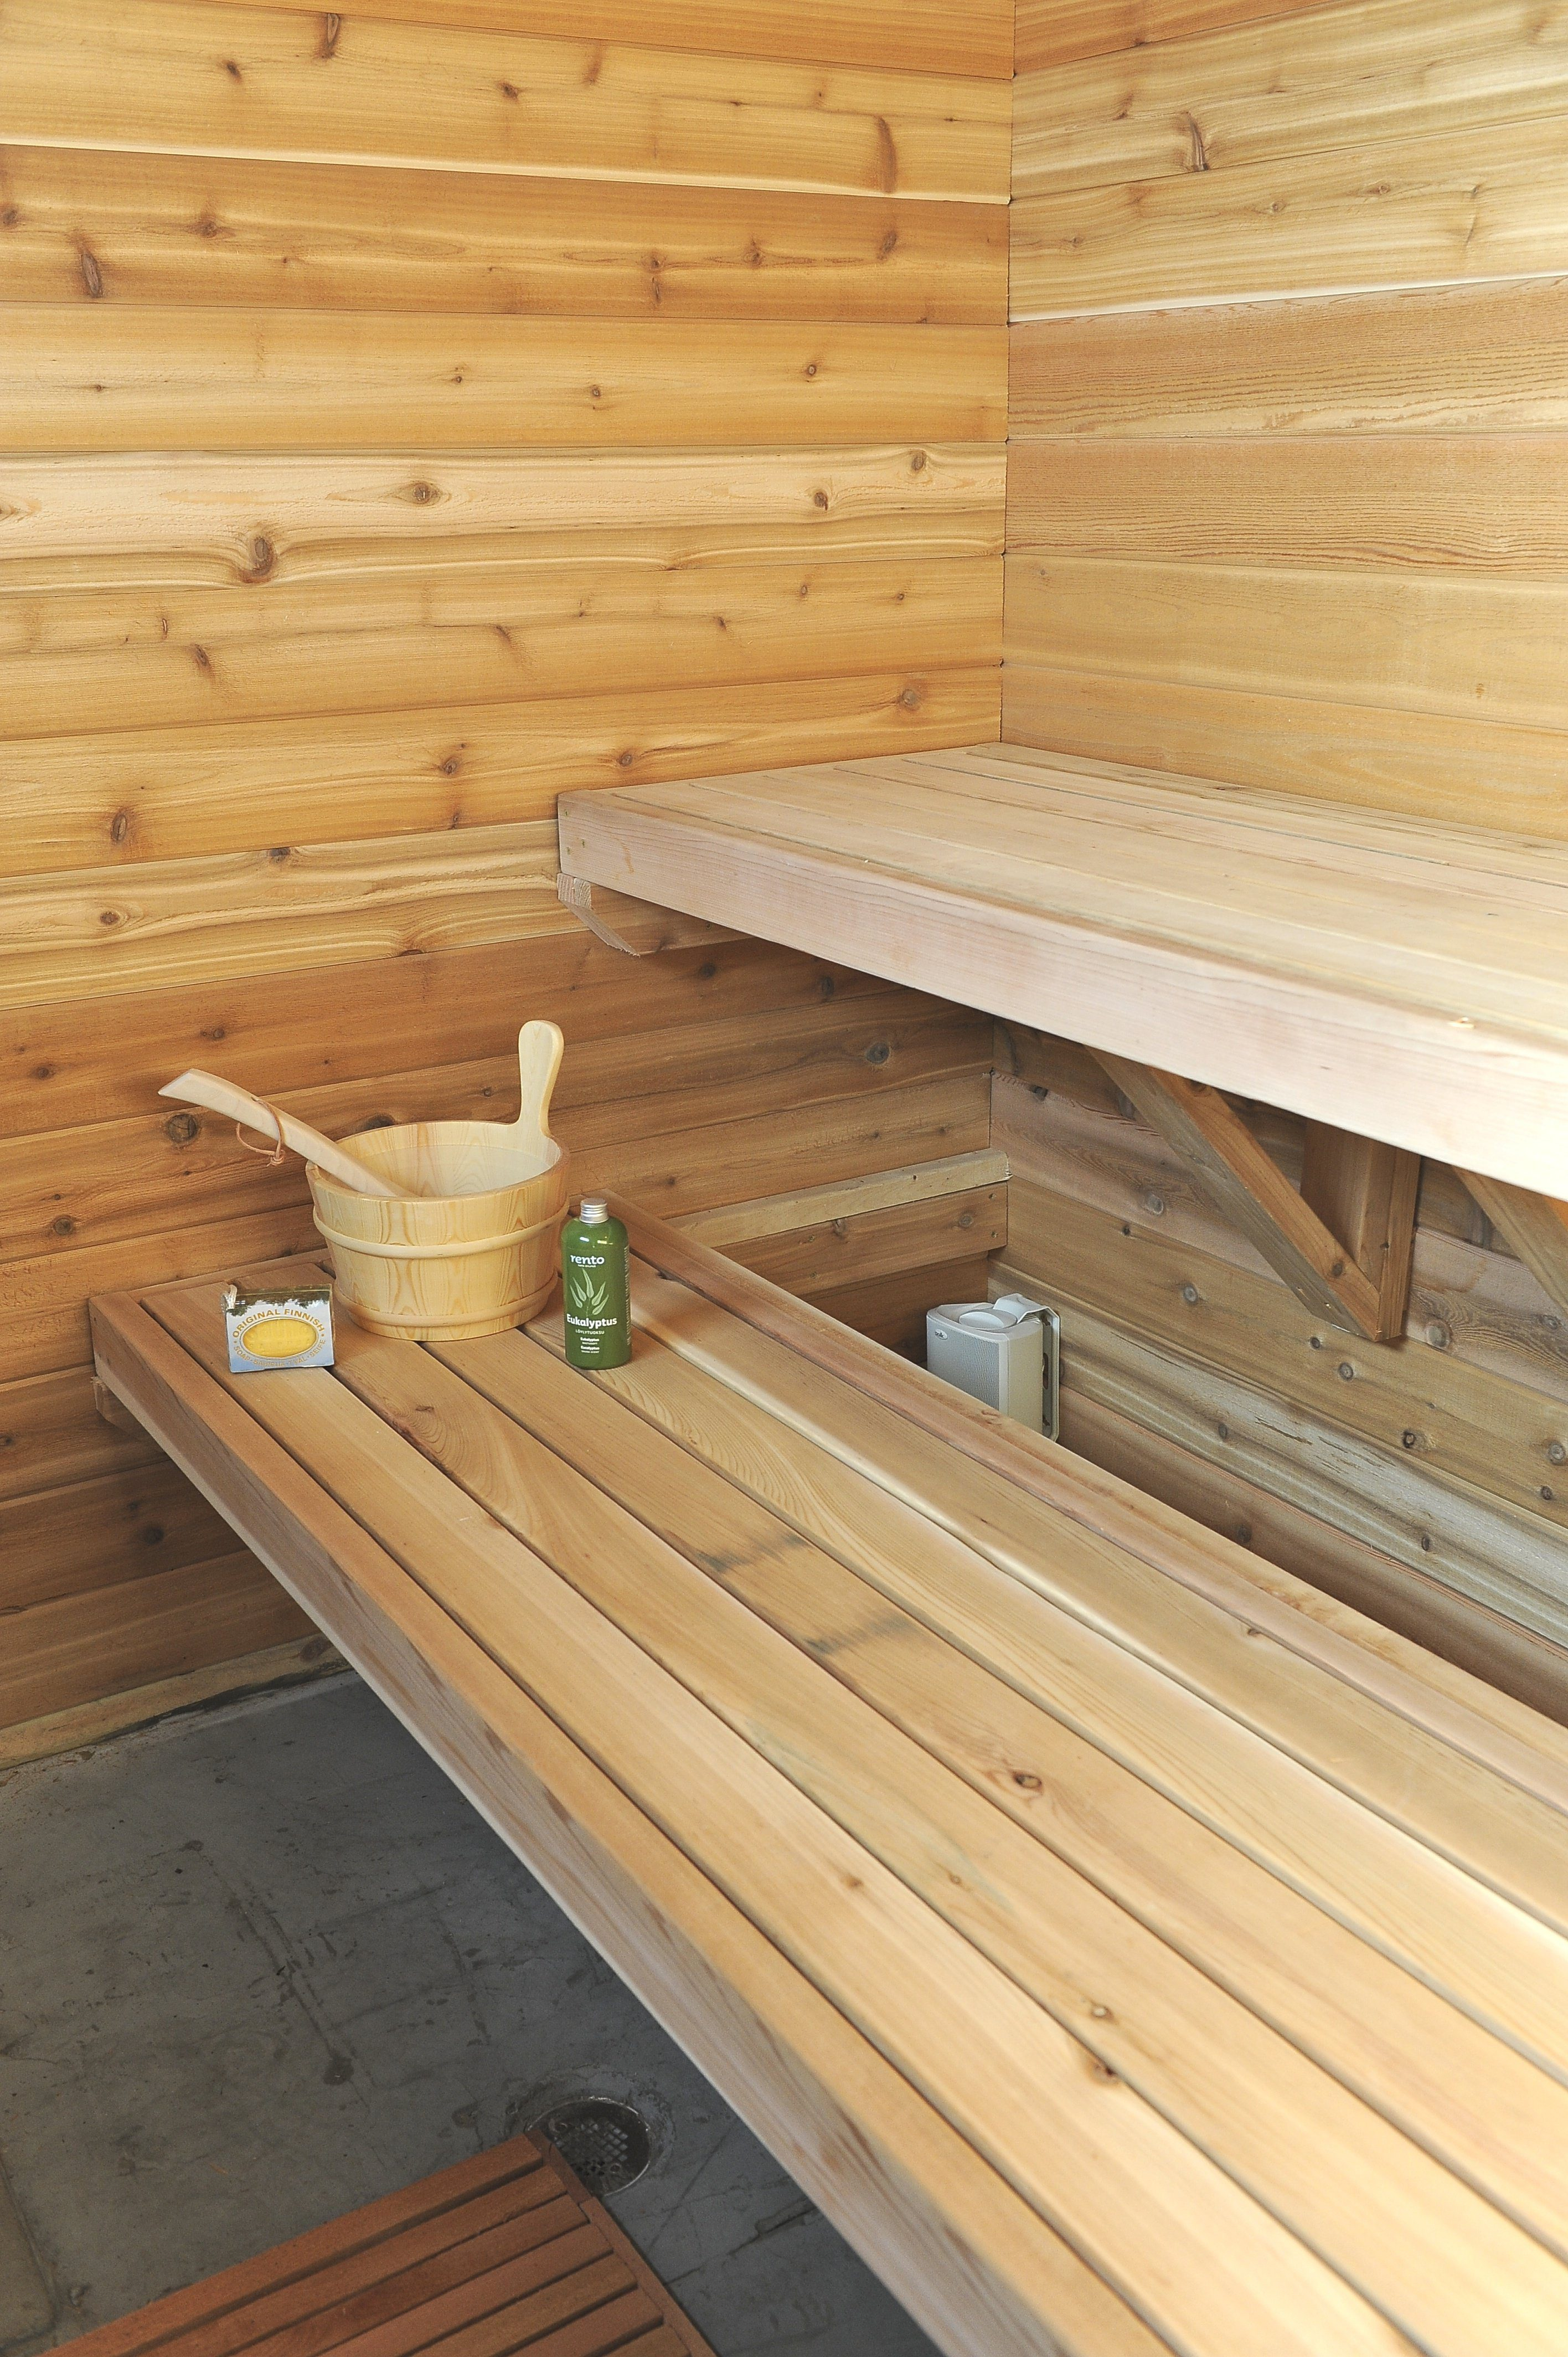 The definitive word on cedar for our saunas saunatimes for Cost to build a sauna